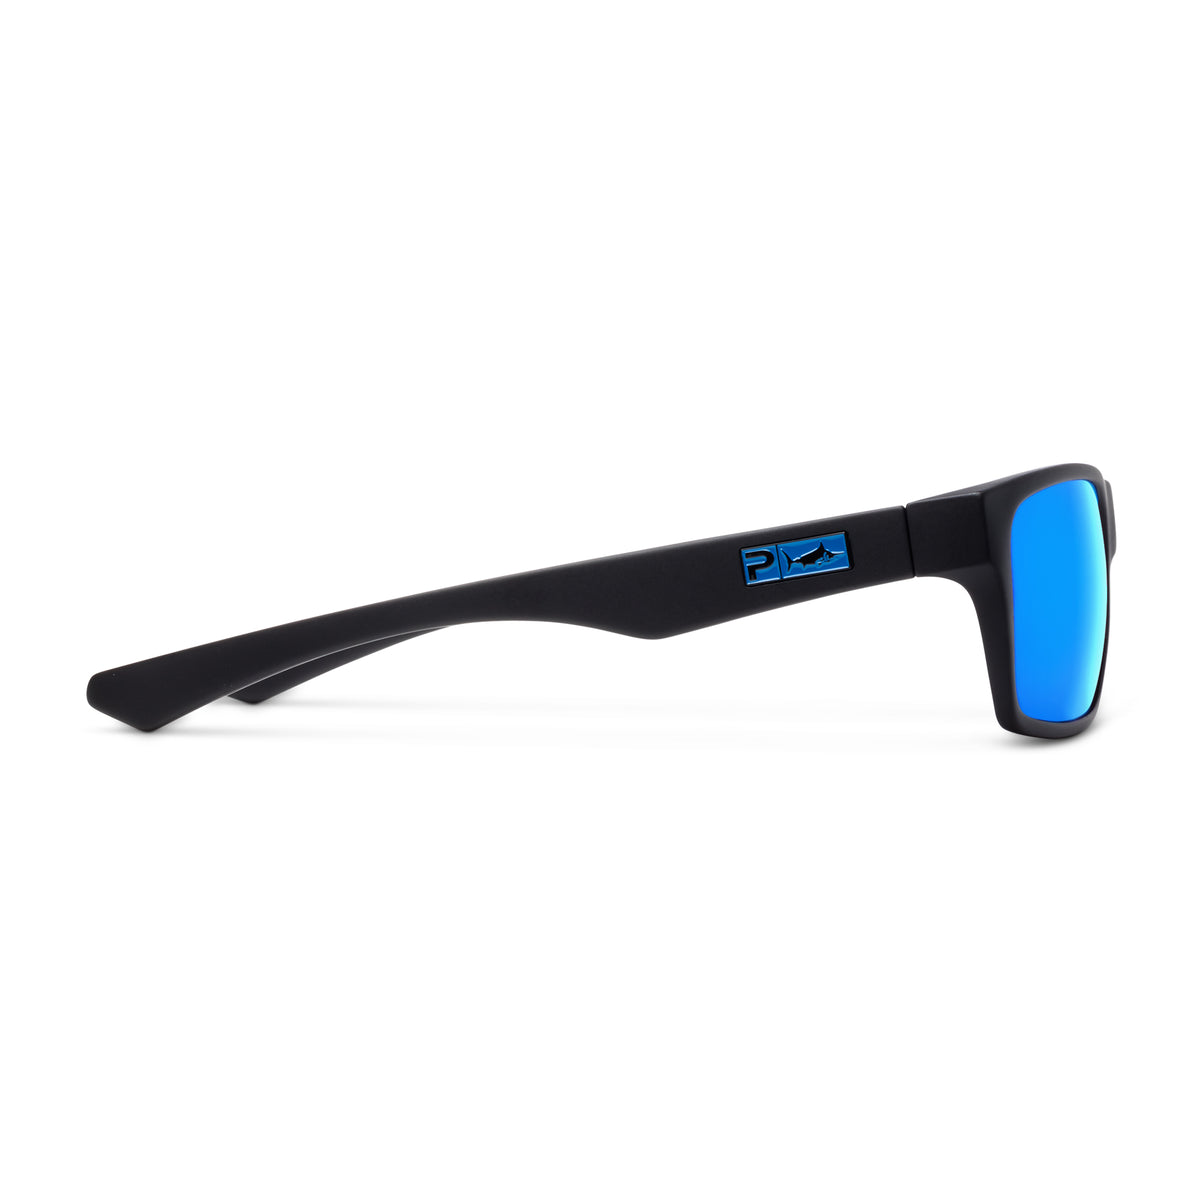 Fish Taco - Polarized Polycarbonate Lens Big Image - 4